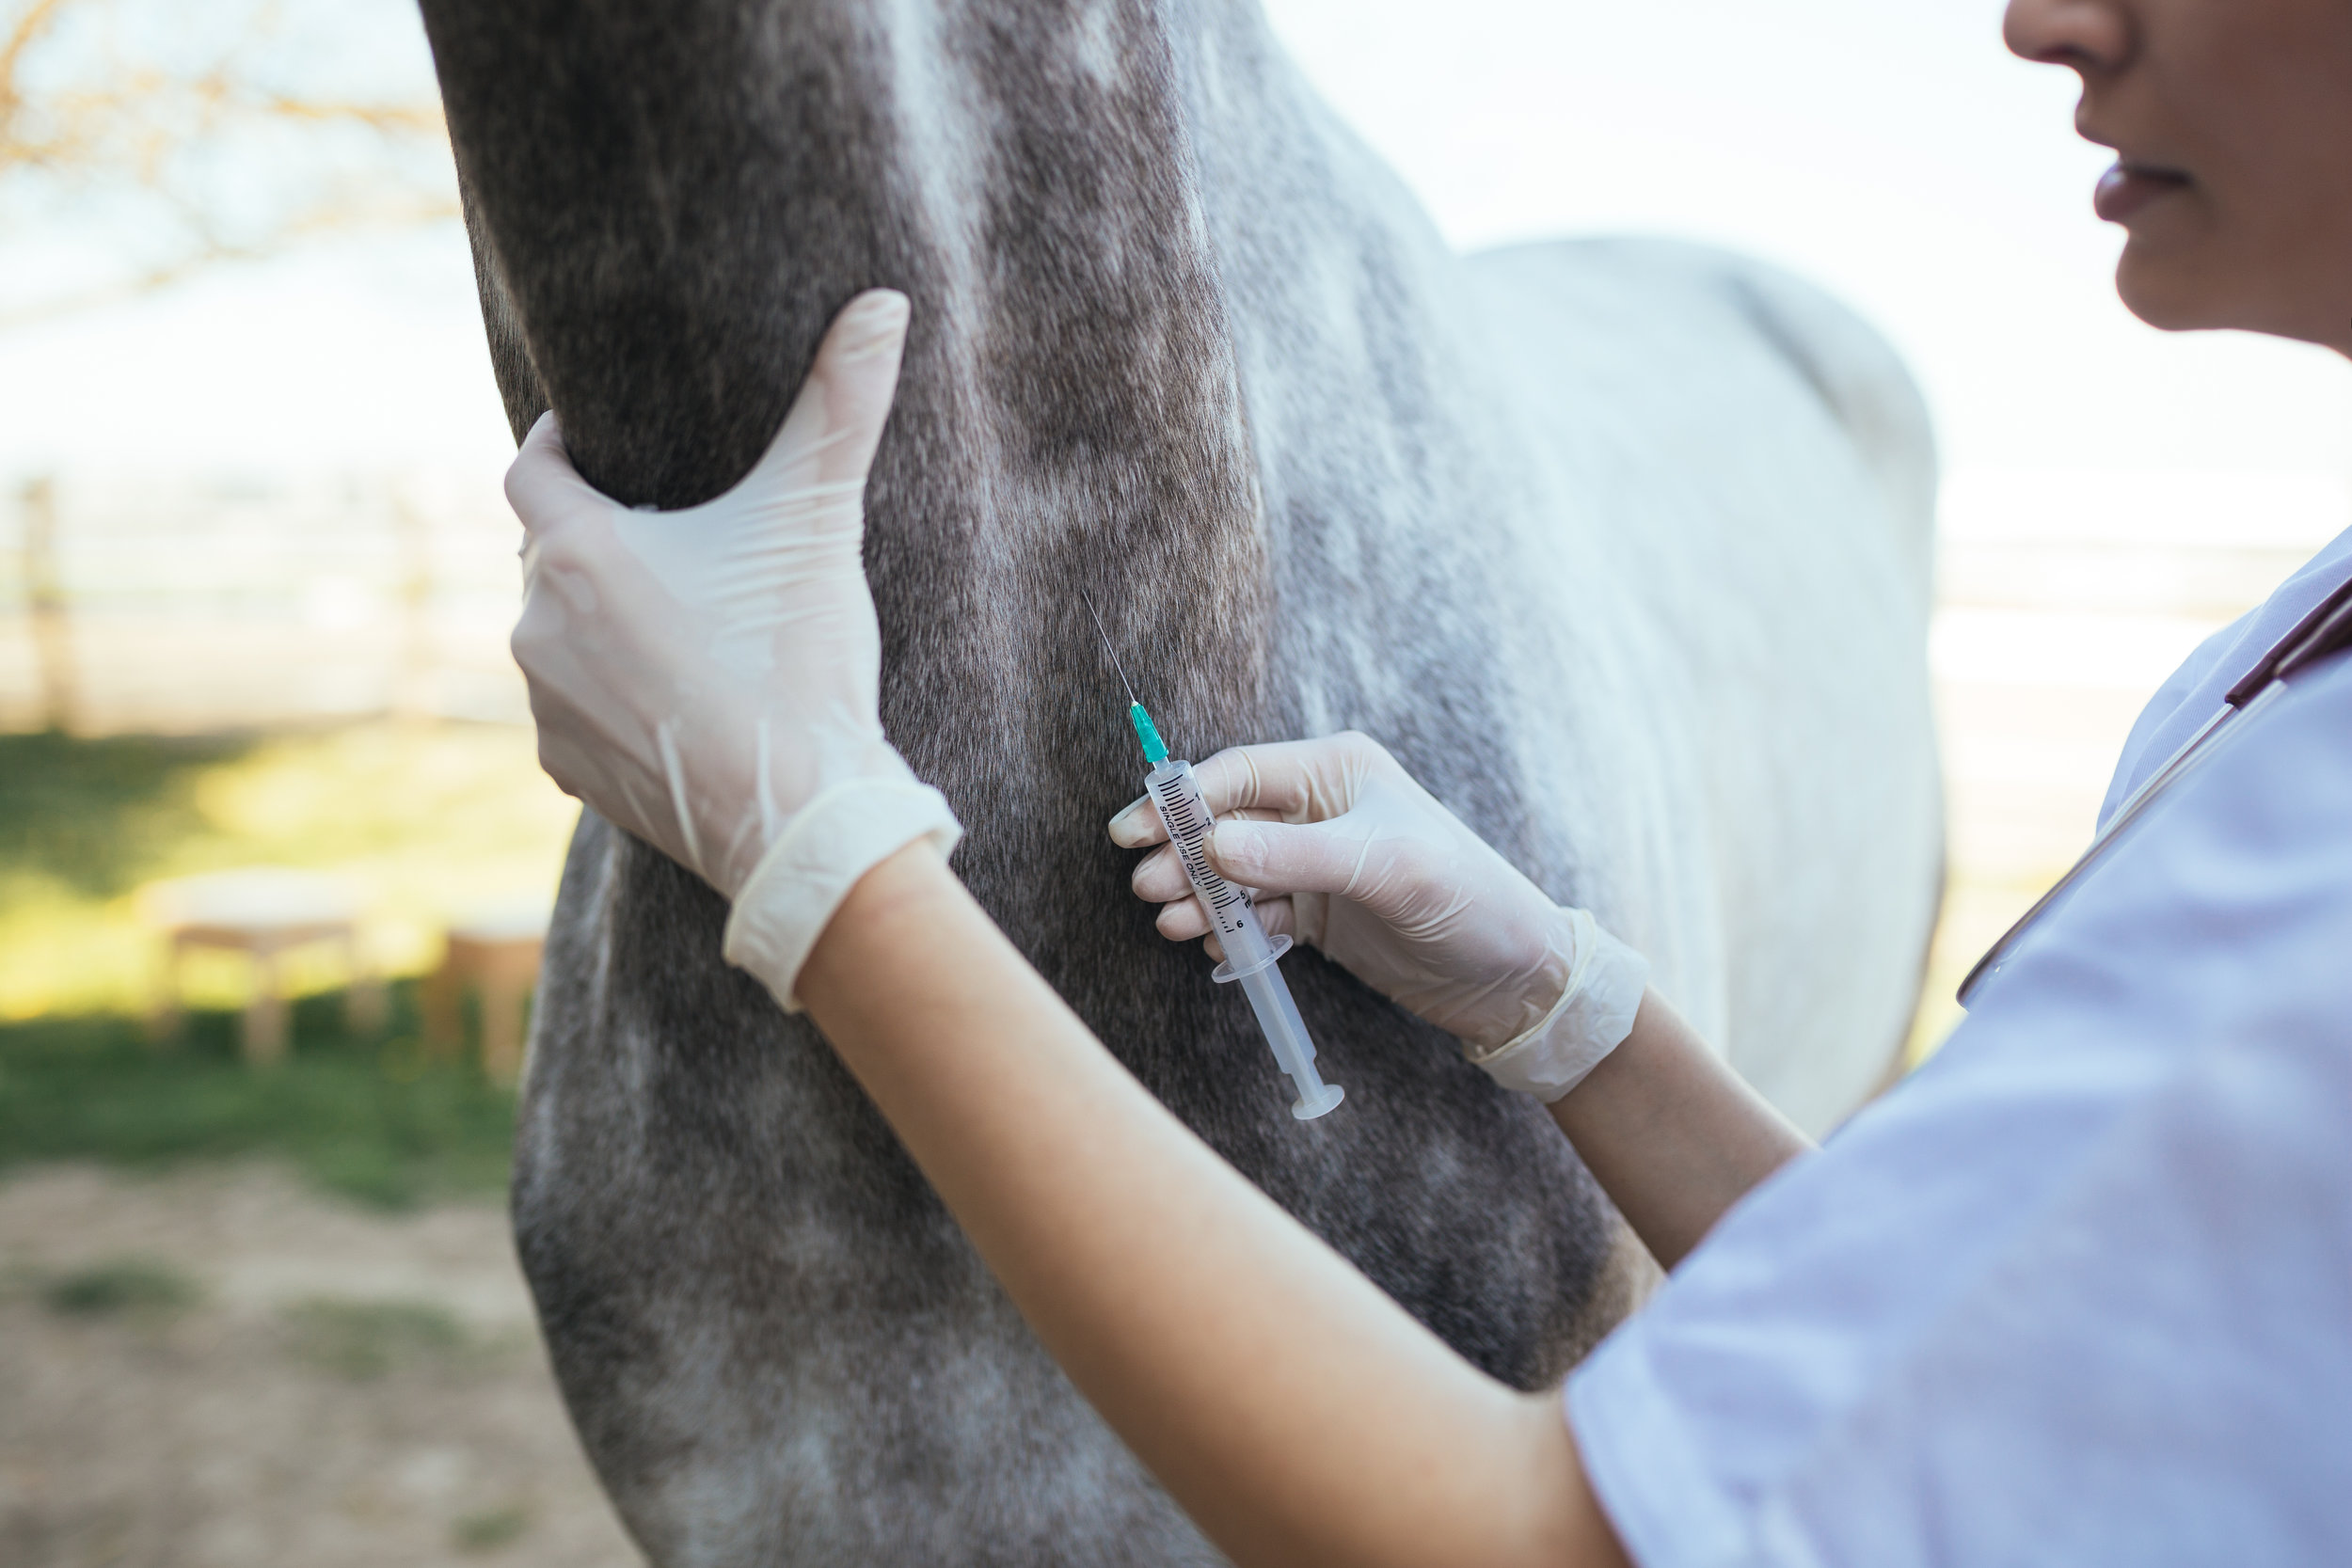 How equine influenza viruses mutate   Debra Elton and Adam Rash      Overview      Equine influenza virus (EIV) causes equine influenza in horses, characterised by a raised temperature and harsh dry cough and rapid transmission amongst unprotected horses. It is a major threat to the thoroughbred racing industry as it has the potential to spread so quickly and can cause the cancellation of events and restriction of horse movement. The last major outbreak in Europe occurred in 2003, when over 1000 vaccinated horses in Newmarket became infected. The virus spread throughout the UK and outbreaks were also reported in Ireland and Italy. More recently, more than 50,000 horses were infected during the 2007 outbreak in Australia, large-scale outbreaks occurred in India during 2008 and 2009 and multiple countries were affected by widespread outbreaks in South America in 2012. At the time of writing, another widespread outbreak has been  affecting South America, with reports from Chile, Argentina, Uruguay and Colombia to date. International transport of horses for events and breeding purposes means that equine influenza can spread readily from one country to another. Infected horses can shed the virus before they show any clinical signs of infection and vaccinated animals can be infectious without showing any obvious signs, adding to the risk.     Regular vaccination against equine influenza offers the best protection against infection. Three major vaccine manufacturers make products for the European market, each differing in the virus strains that are included in the vaccine. Sophisticated adjuvants are included in these vaccines, which help boost the horse's immune response. However, EIV, like other influenza viruses, can mutate to change its surface proteins and can thereby escape from immunity generated by vaccination. It is important that vaccines contain relevant vaccine strains, to give them the best chance of working against current EIVs.     EIV belongs to the influen